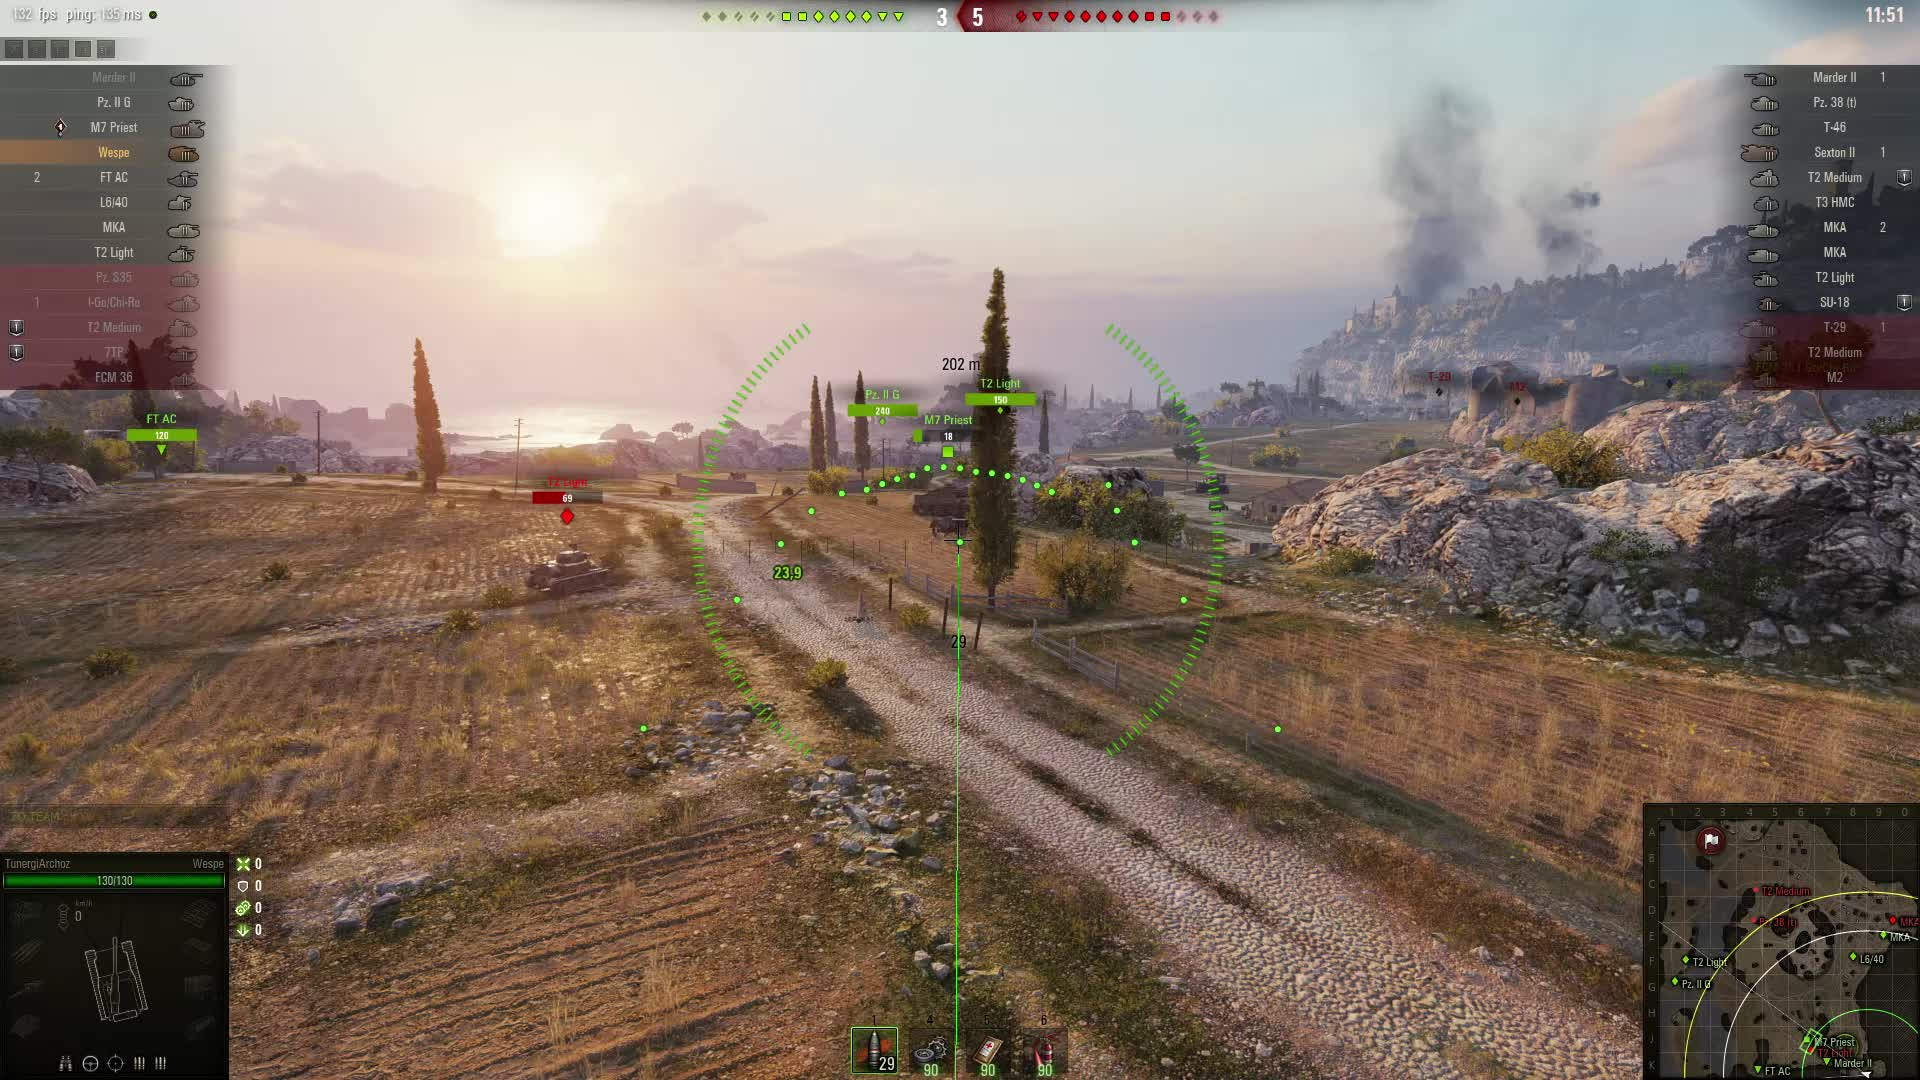 200IQ, Artillery, Arty, Funny, Hillarious, Ridiculous, Shenanigans, Troll, Trolled, WoT, World of Tanks, WorldOfTanks, the most 200IQ thing I've ever done in my entire life GIFs